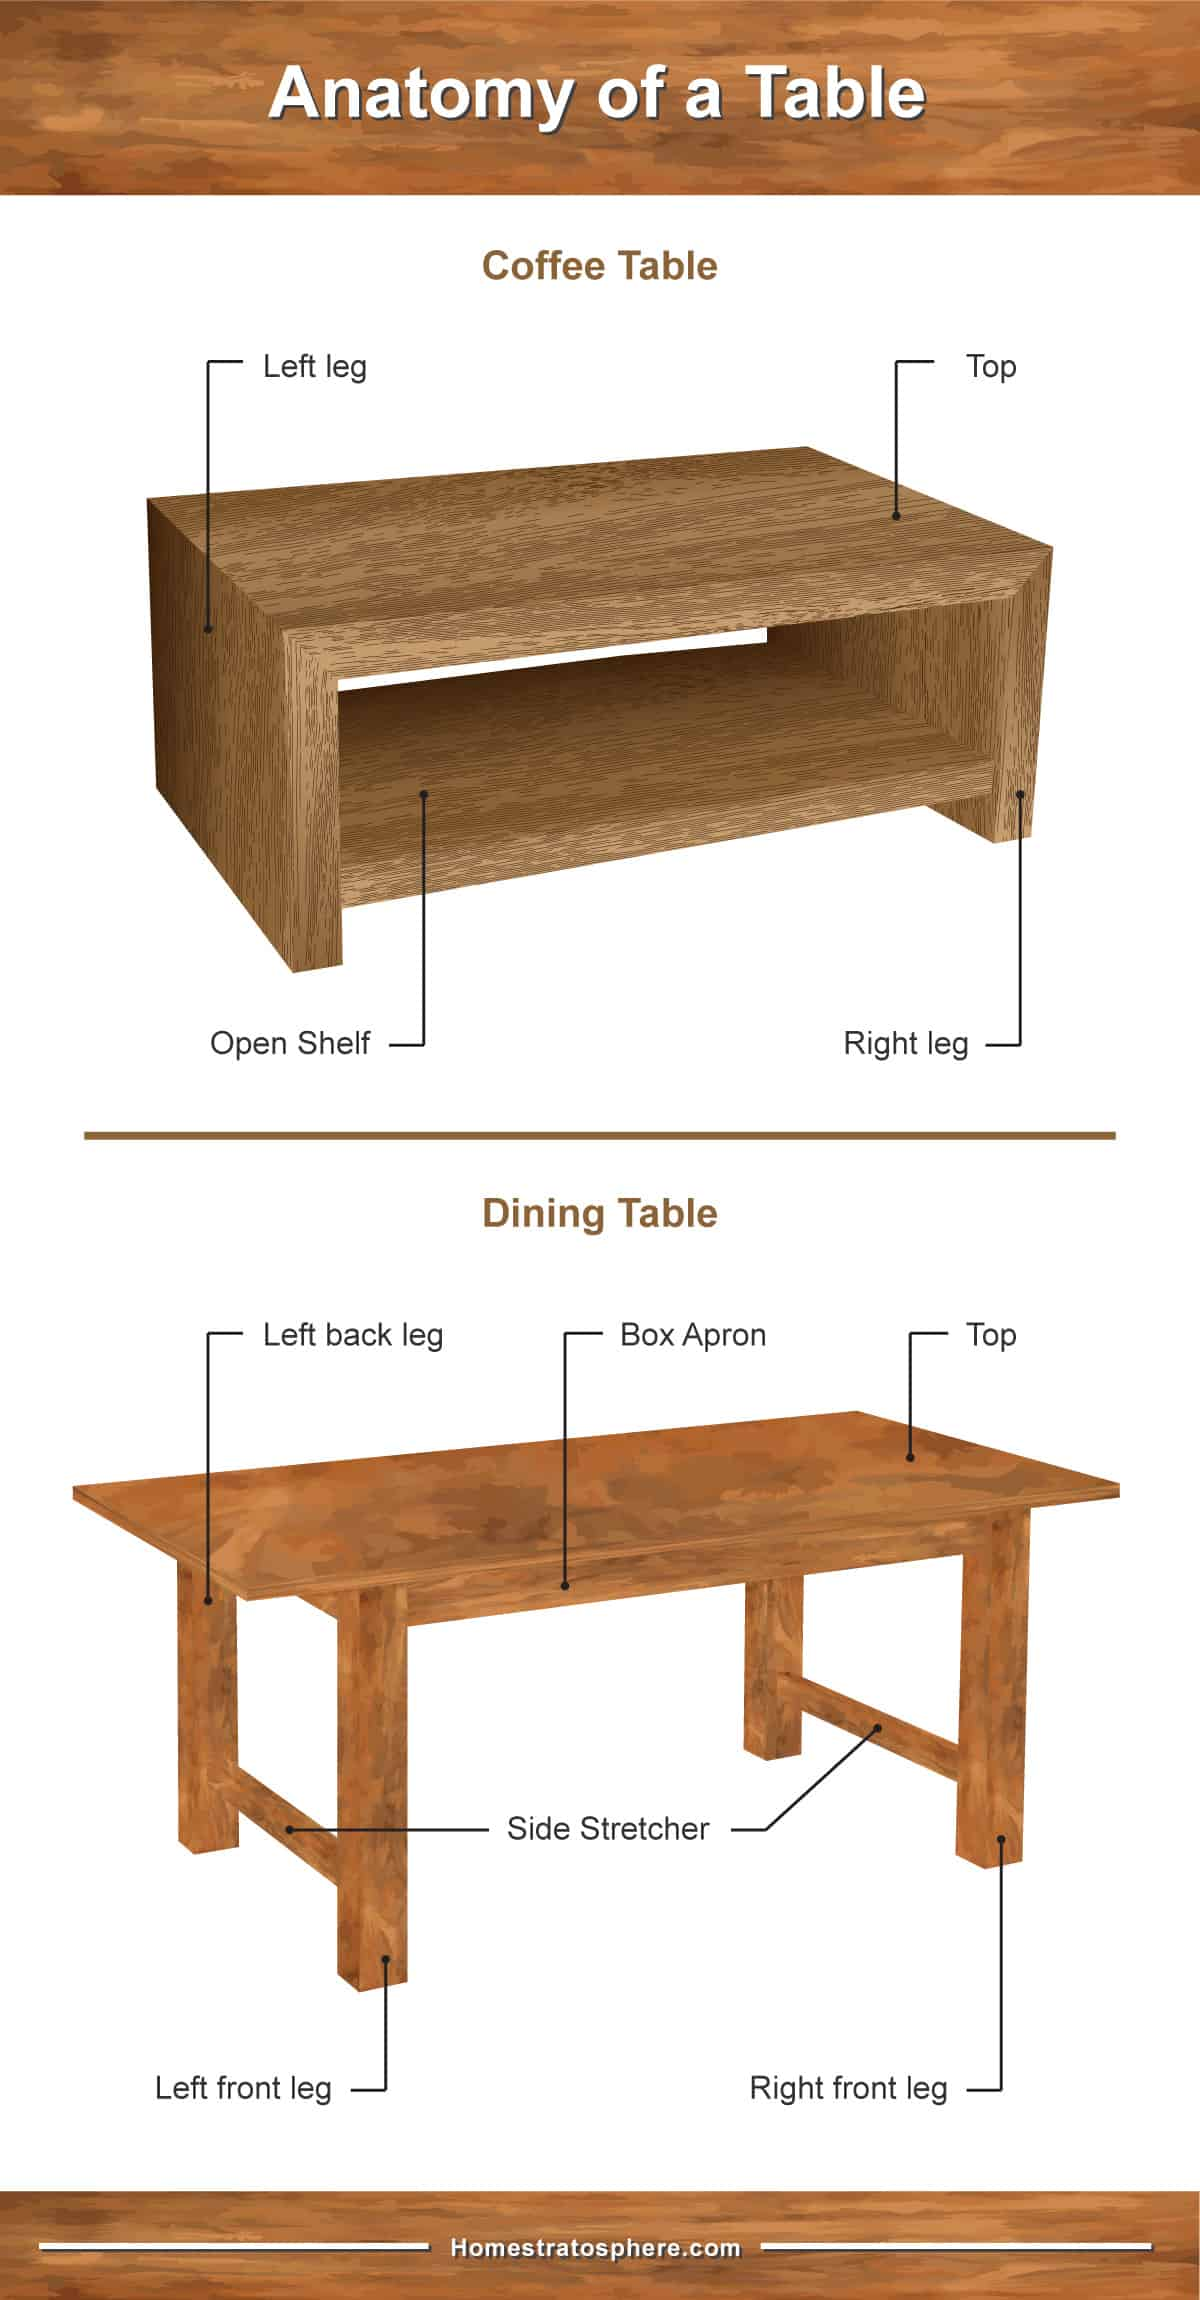 Anatomy of dining and coffee tables (diagram)